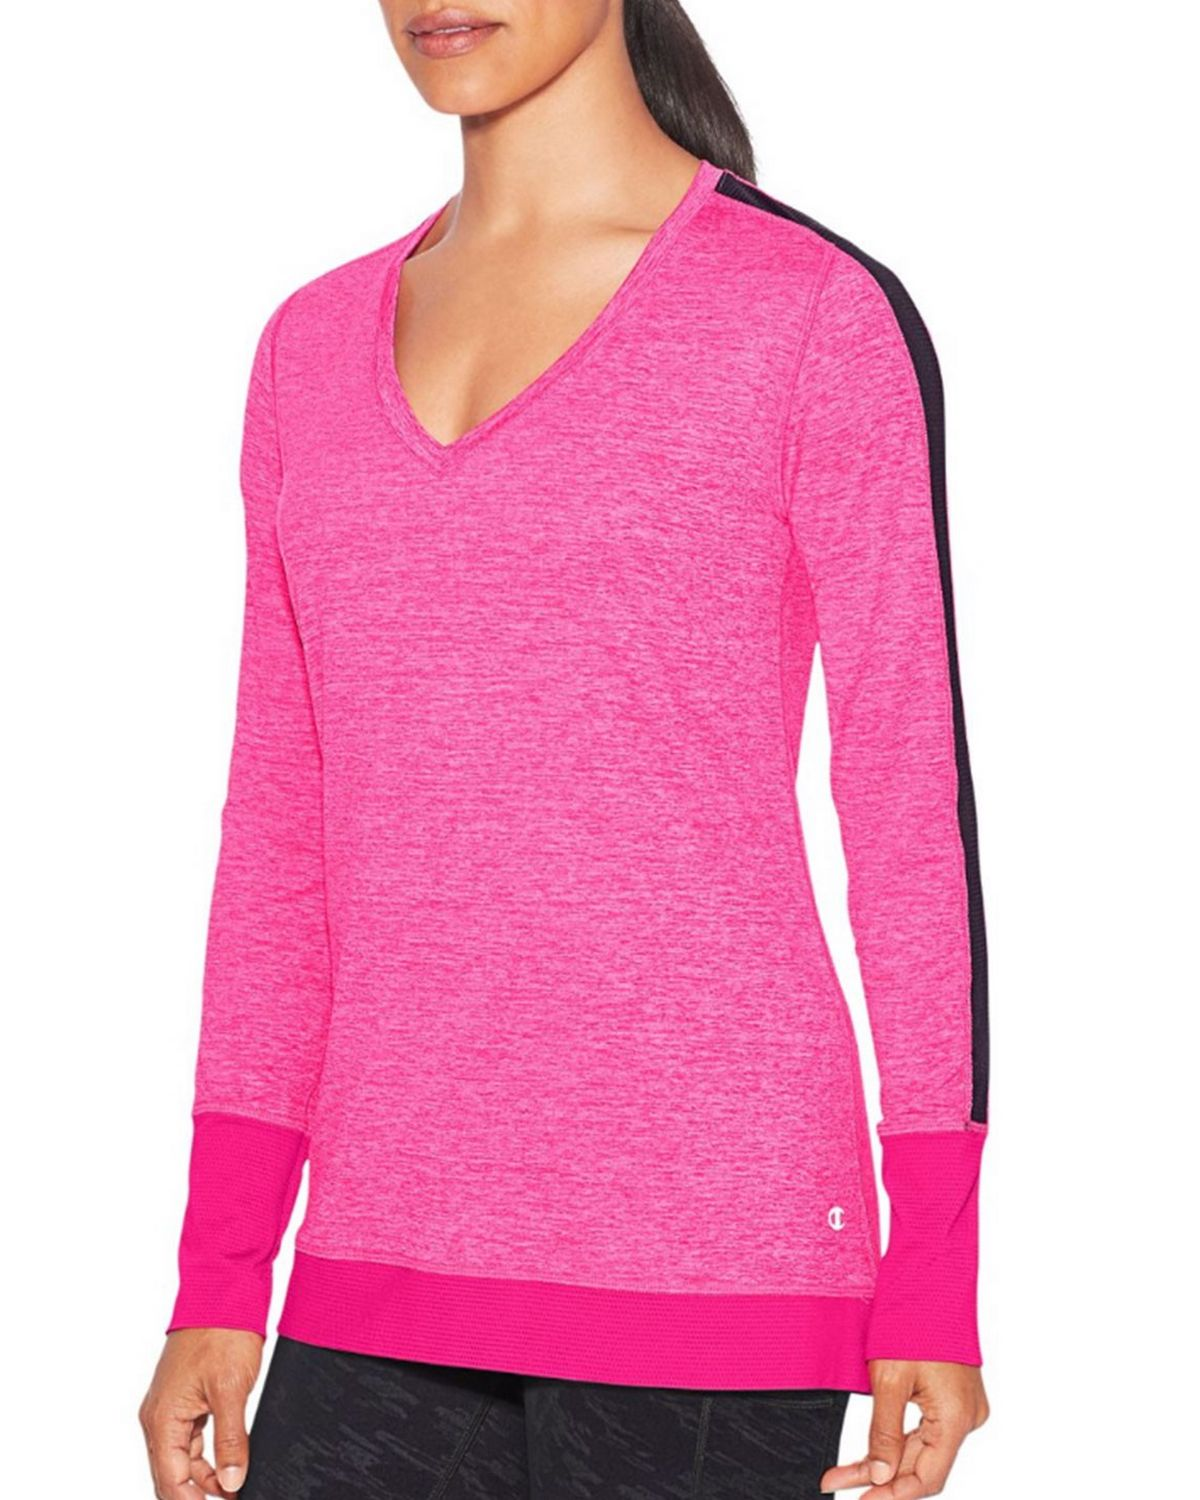 Champion W9914 Womens Long Sleeve Tee - Pop Art Pink Heather - M W9914